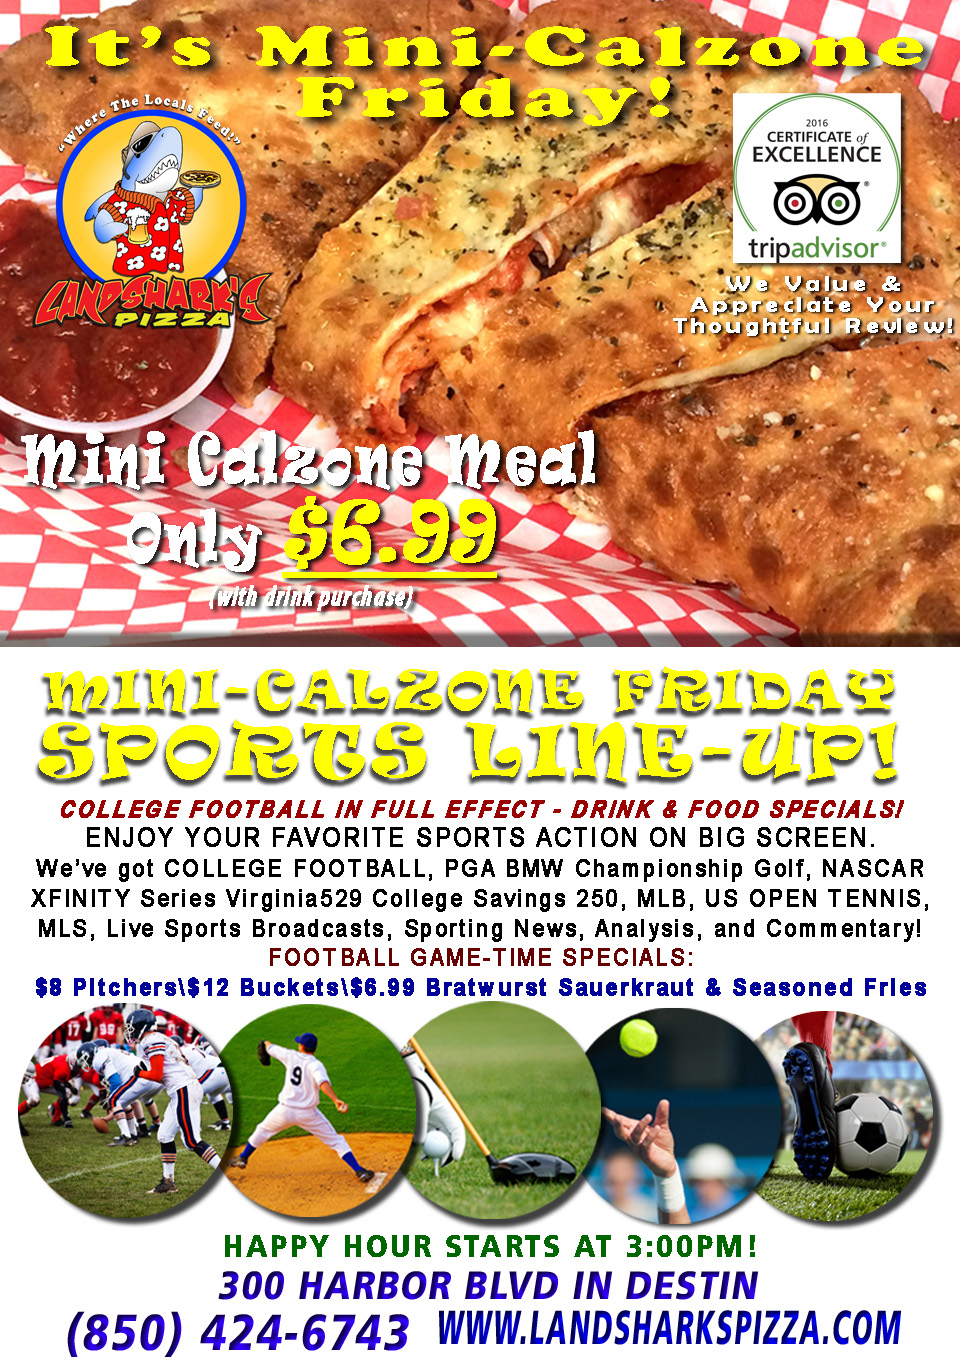 destin-fl-calzones-award-winning-landsharks-pizza-menu-09-09-16a